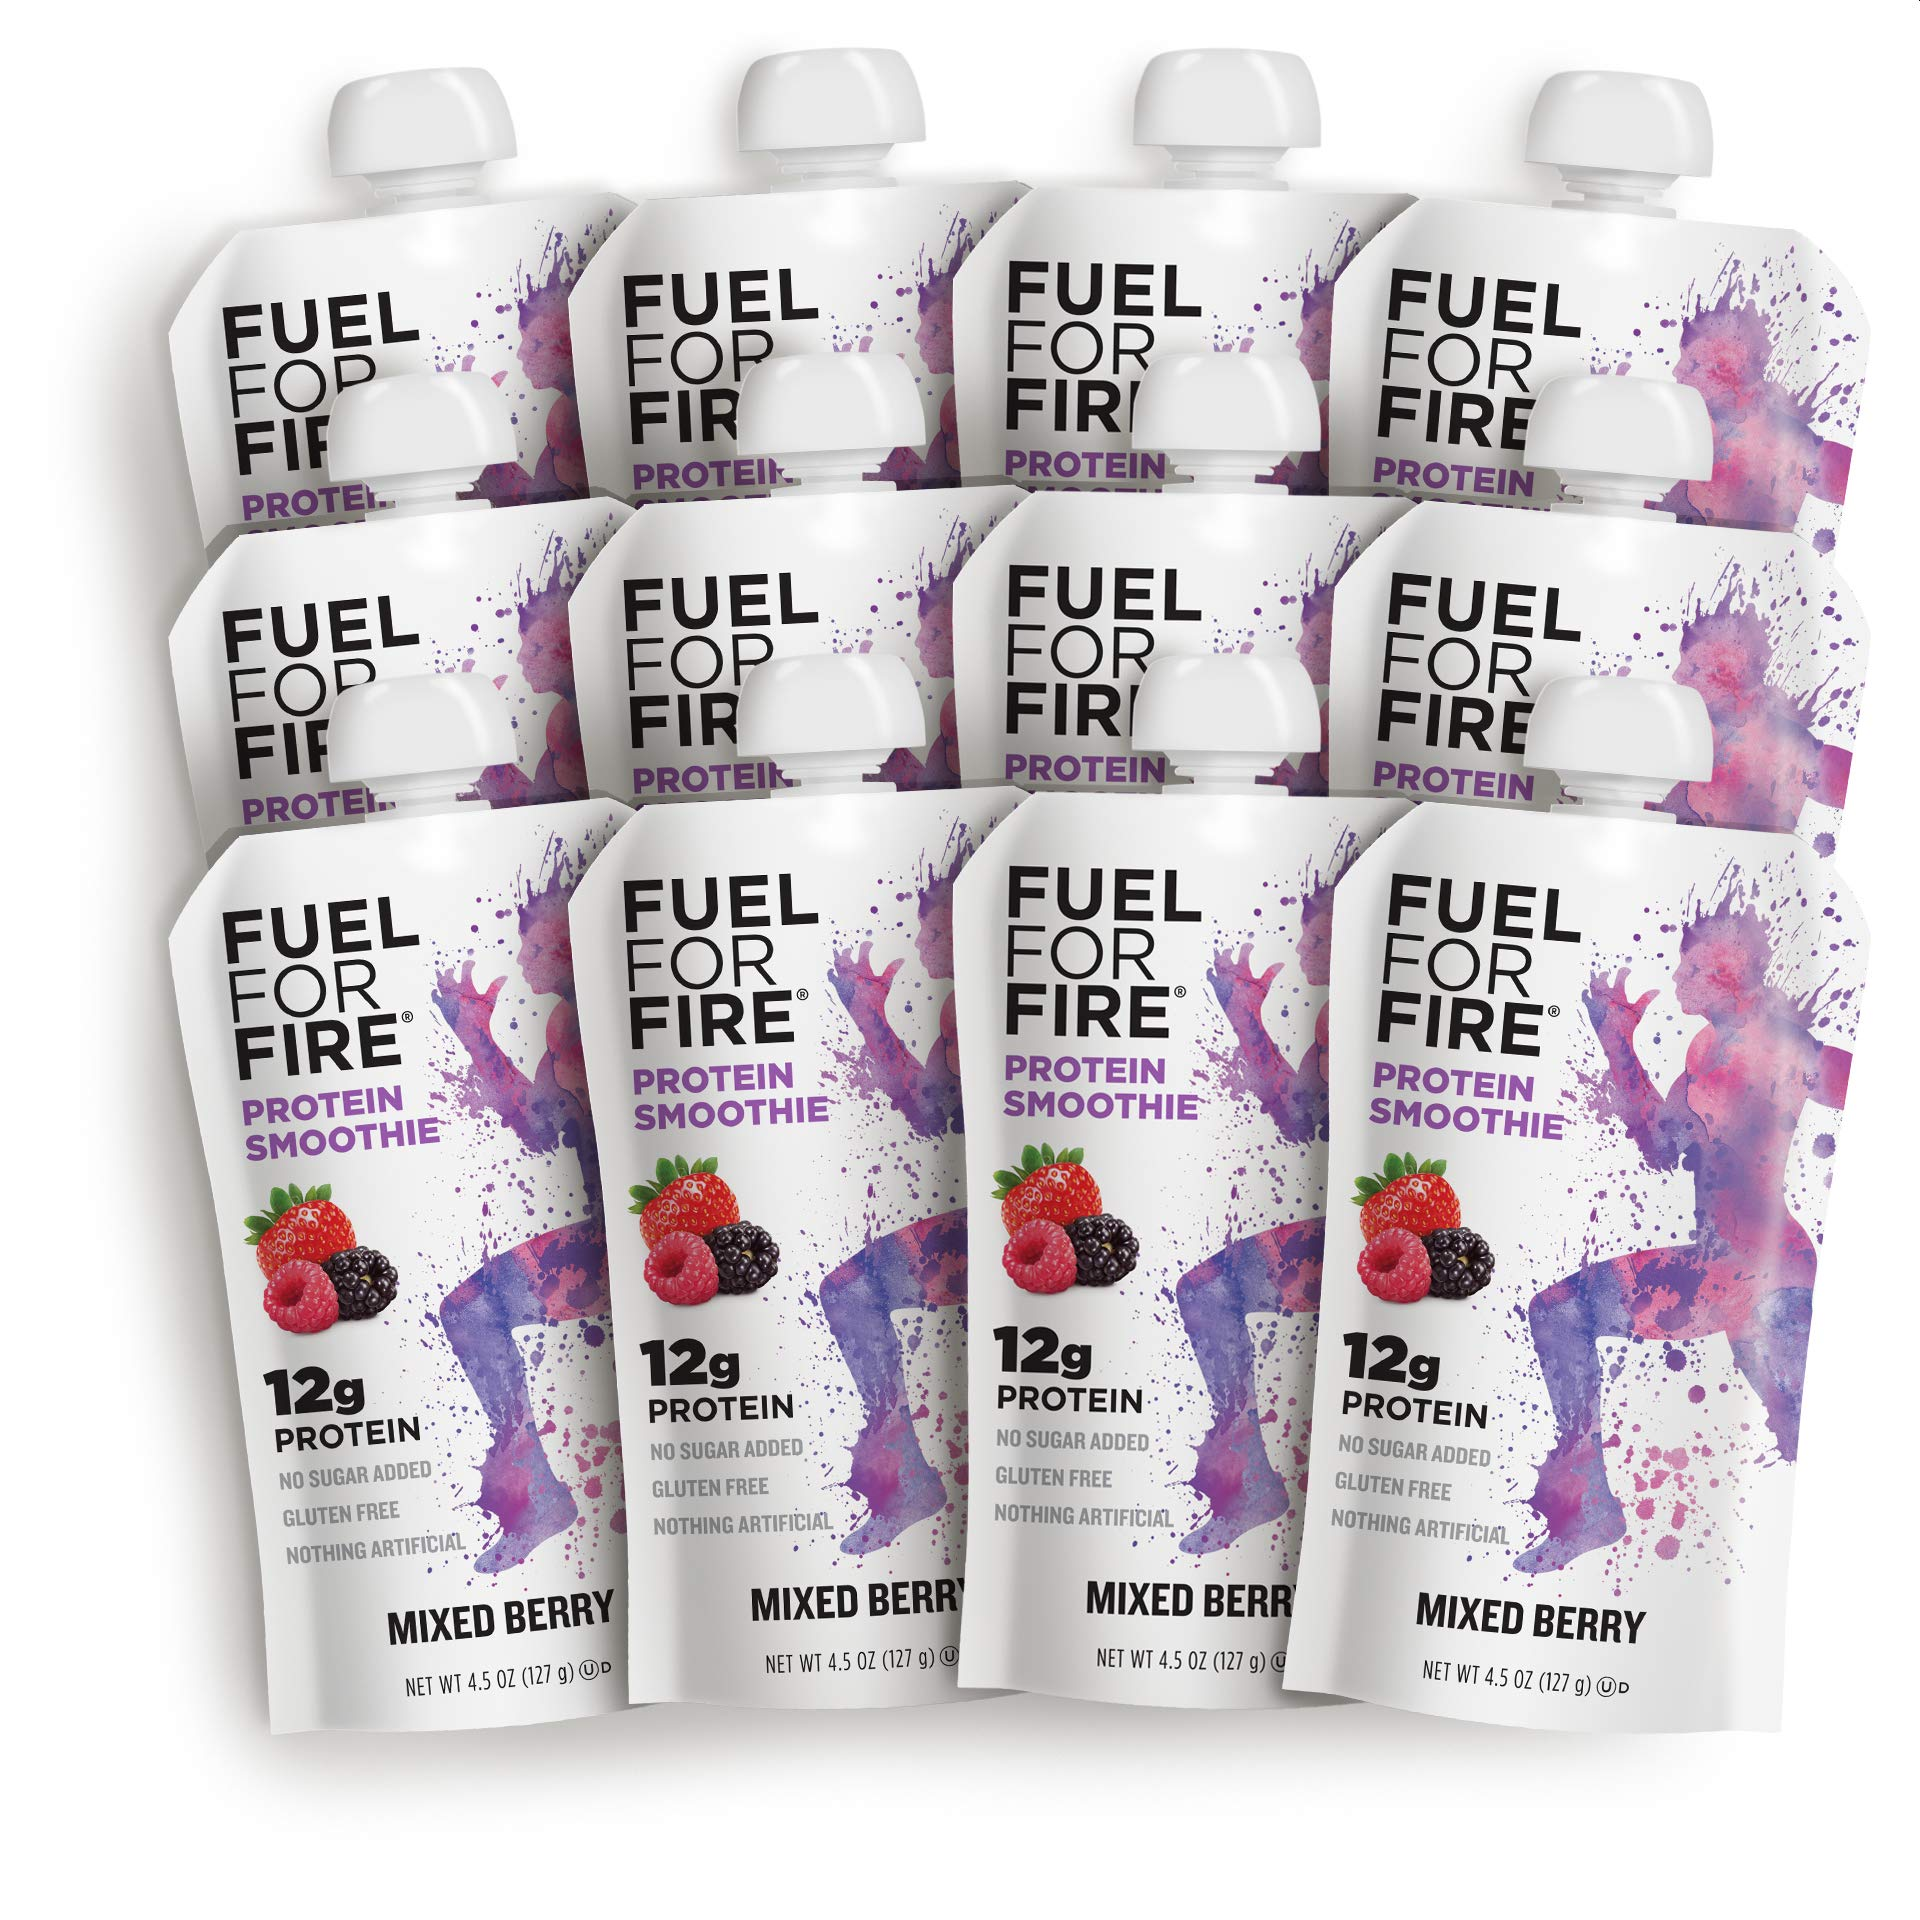 Fuel For Fire - Mixed Berry (12 Pack) Fruit & Protein Smoothie Squeeze Pouch   Perfect for Workouts, Kids, Snacking - Gluten-Free, Soy-Free, Kosher (4.5 ounce pouches) by FUEL FOR FIRE